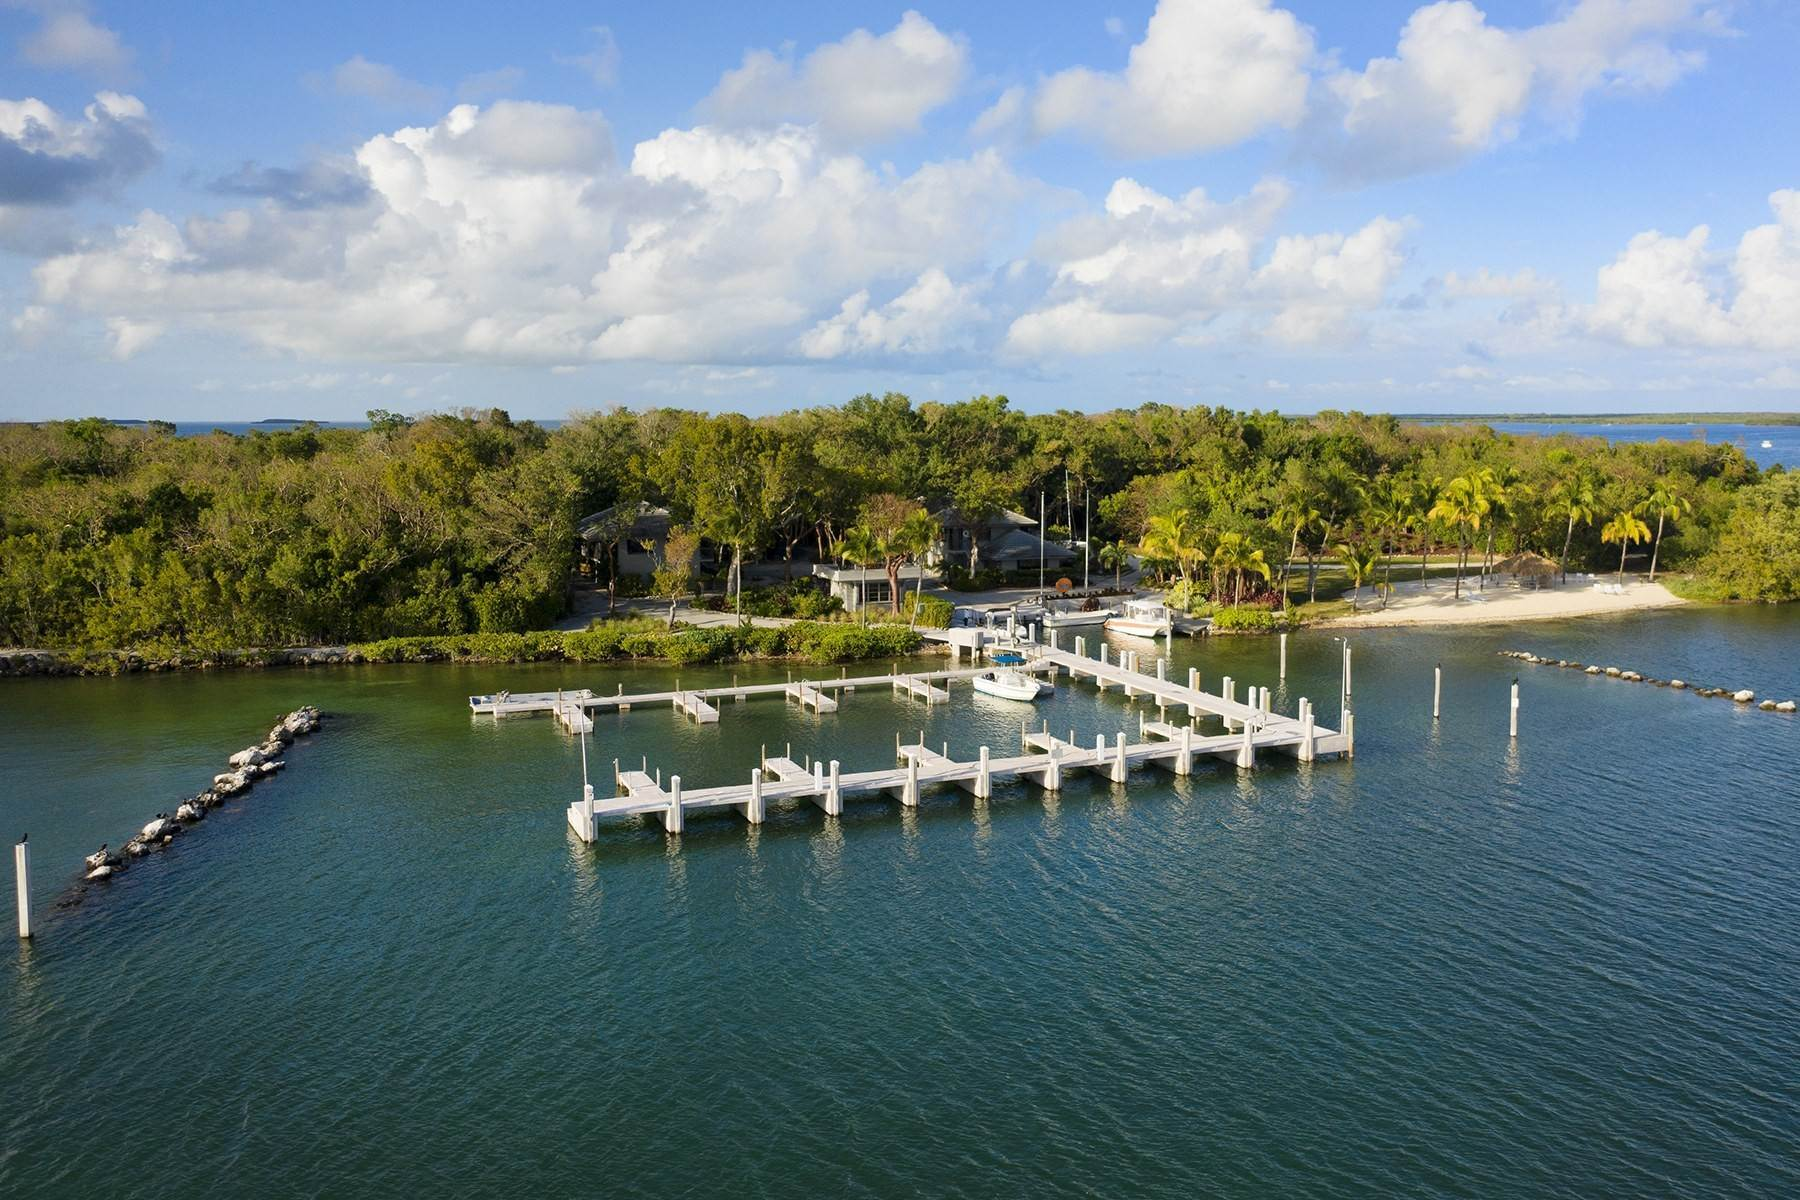 5. Property for Sale at 10 Cannon Point, Key Largo, FL 10 Cannon Point Key Largo, Florida 33037 United States